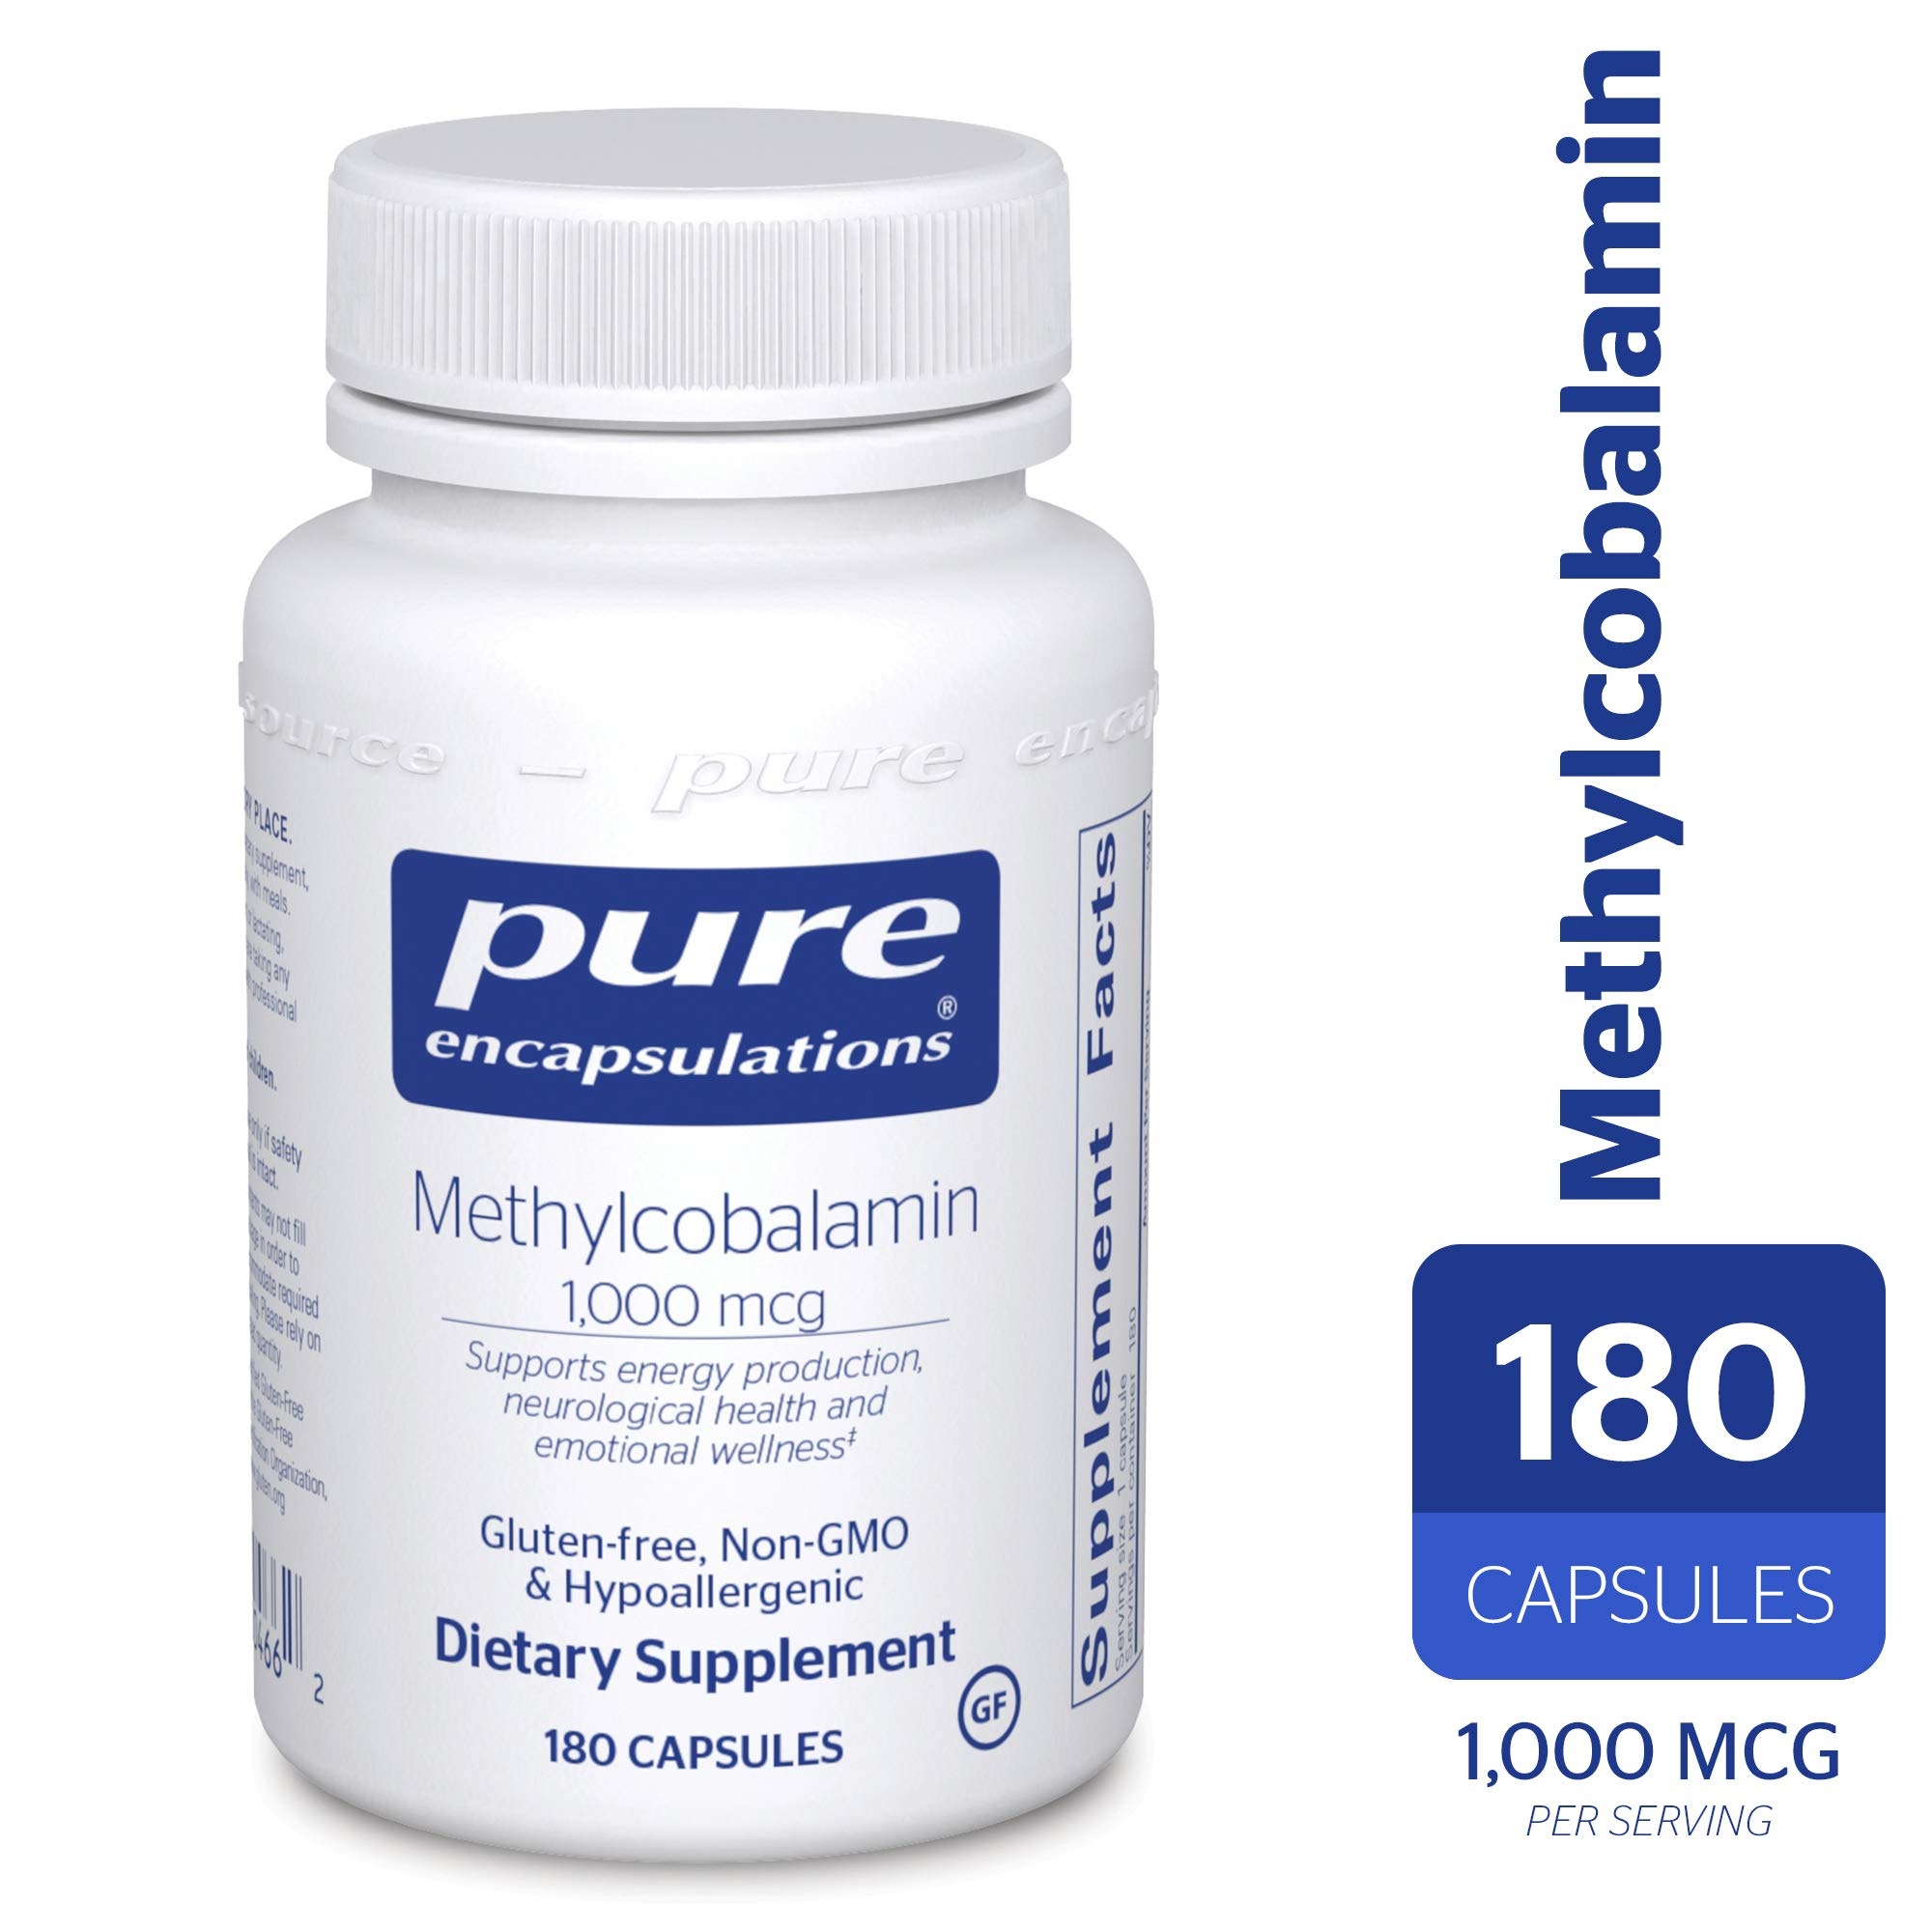 Pure Encapsulations - Methylcobalamin - Advanced Vitamin B12 for a Healthy Nervous System* - 180 Capsules by Pure Encapsulations